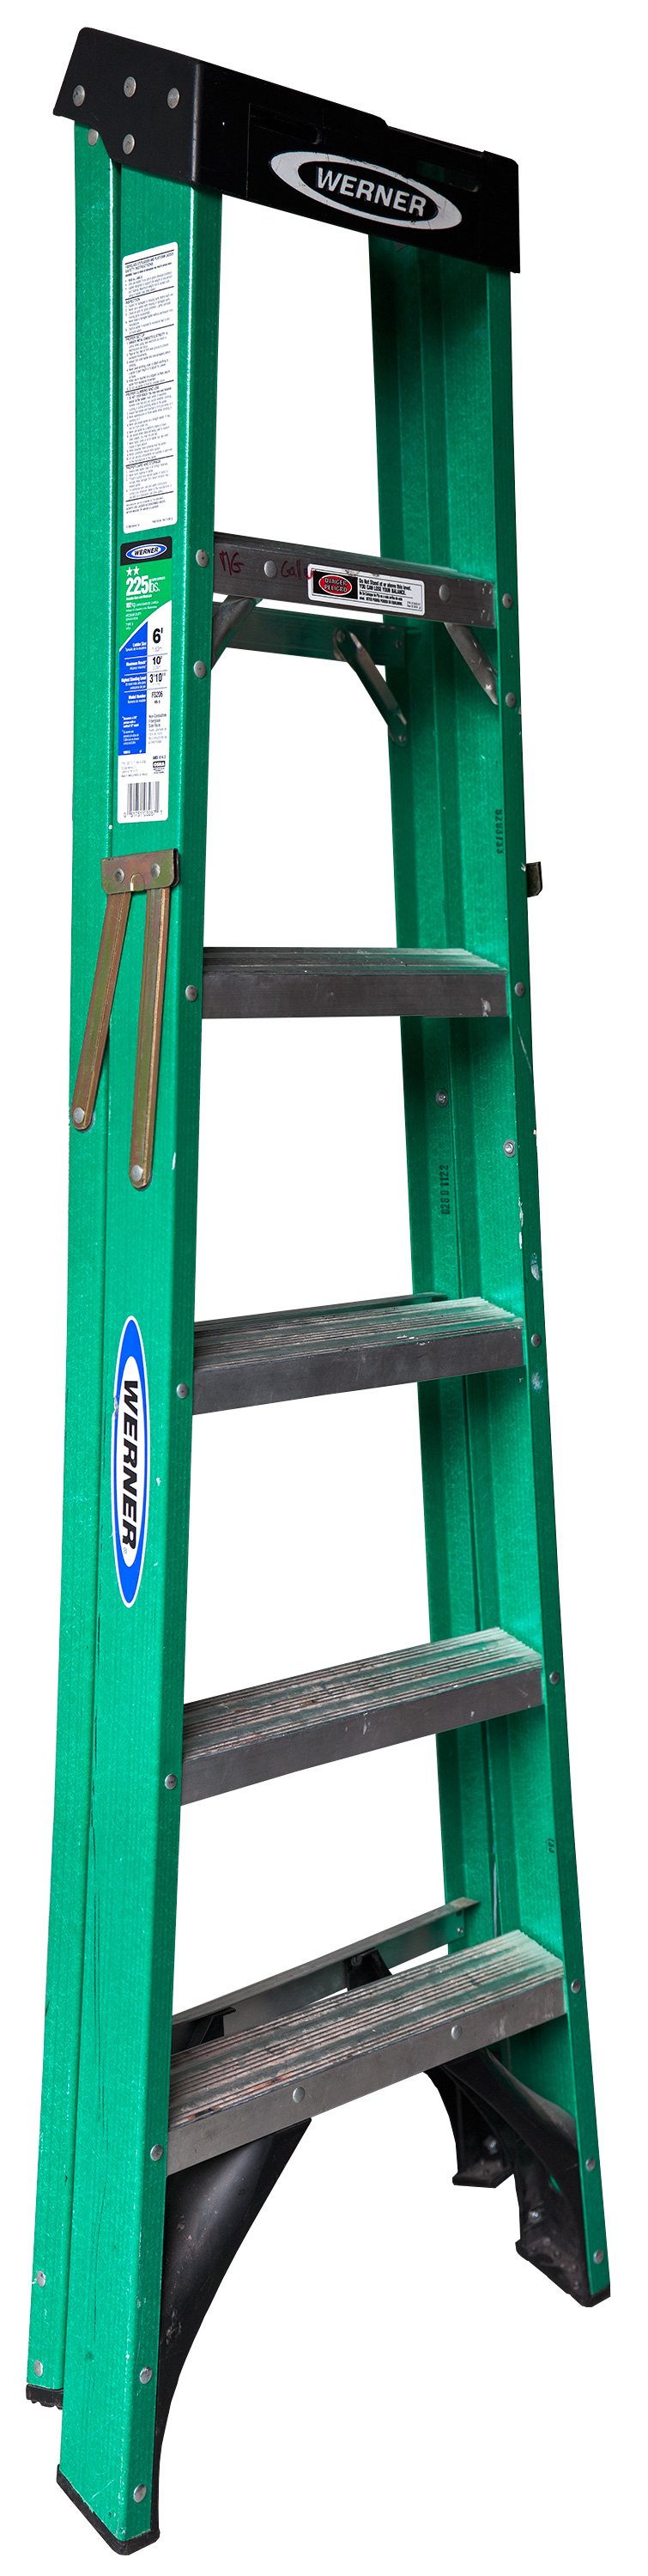 Medium Folding Ladder: Green with Black Top , 2012  Pigment ink on Photo-Tex paper with foamcore and acrylic paint  70 x 17 inches